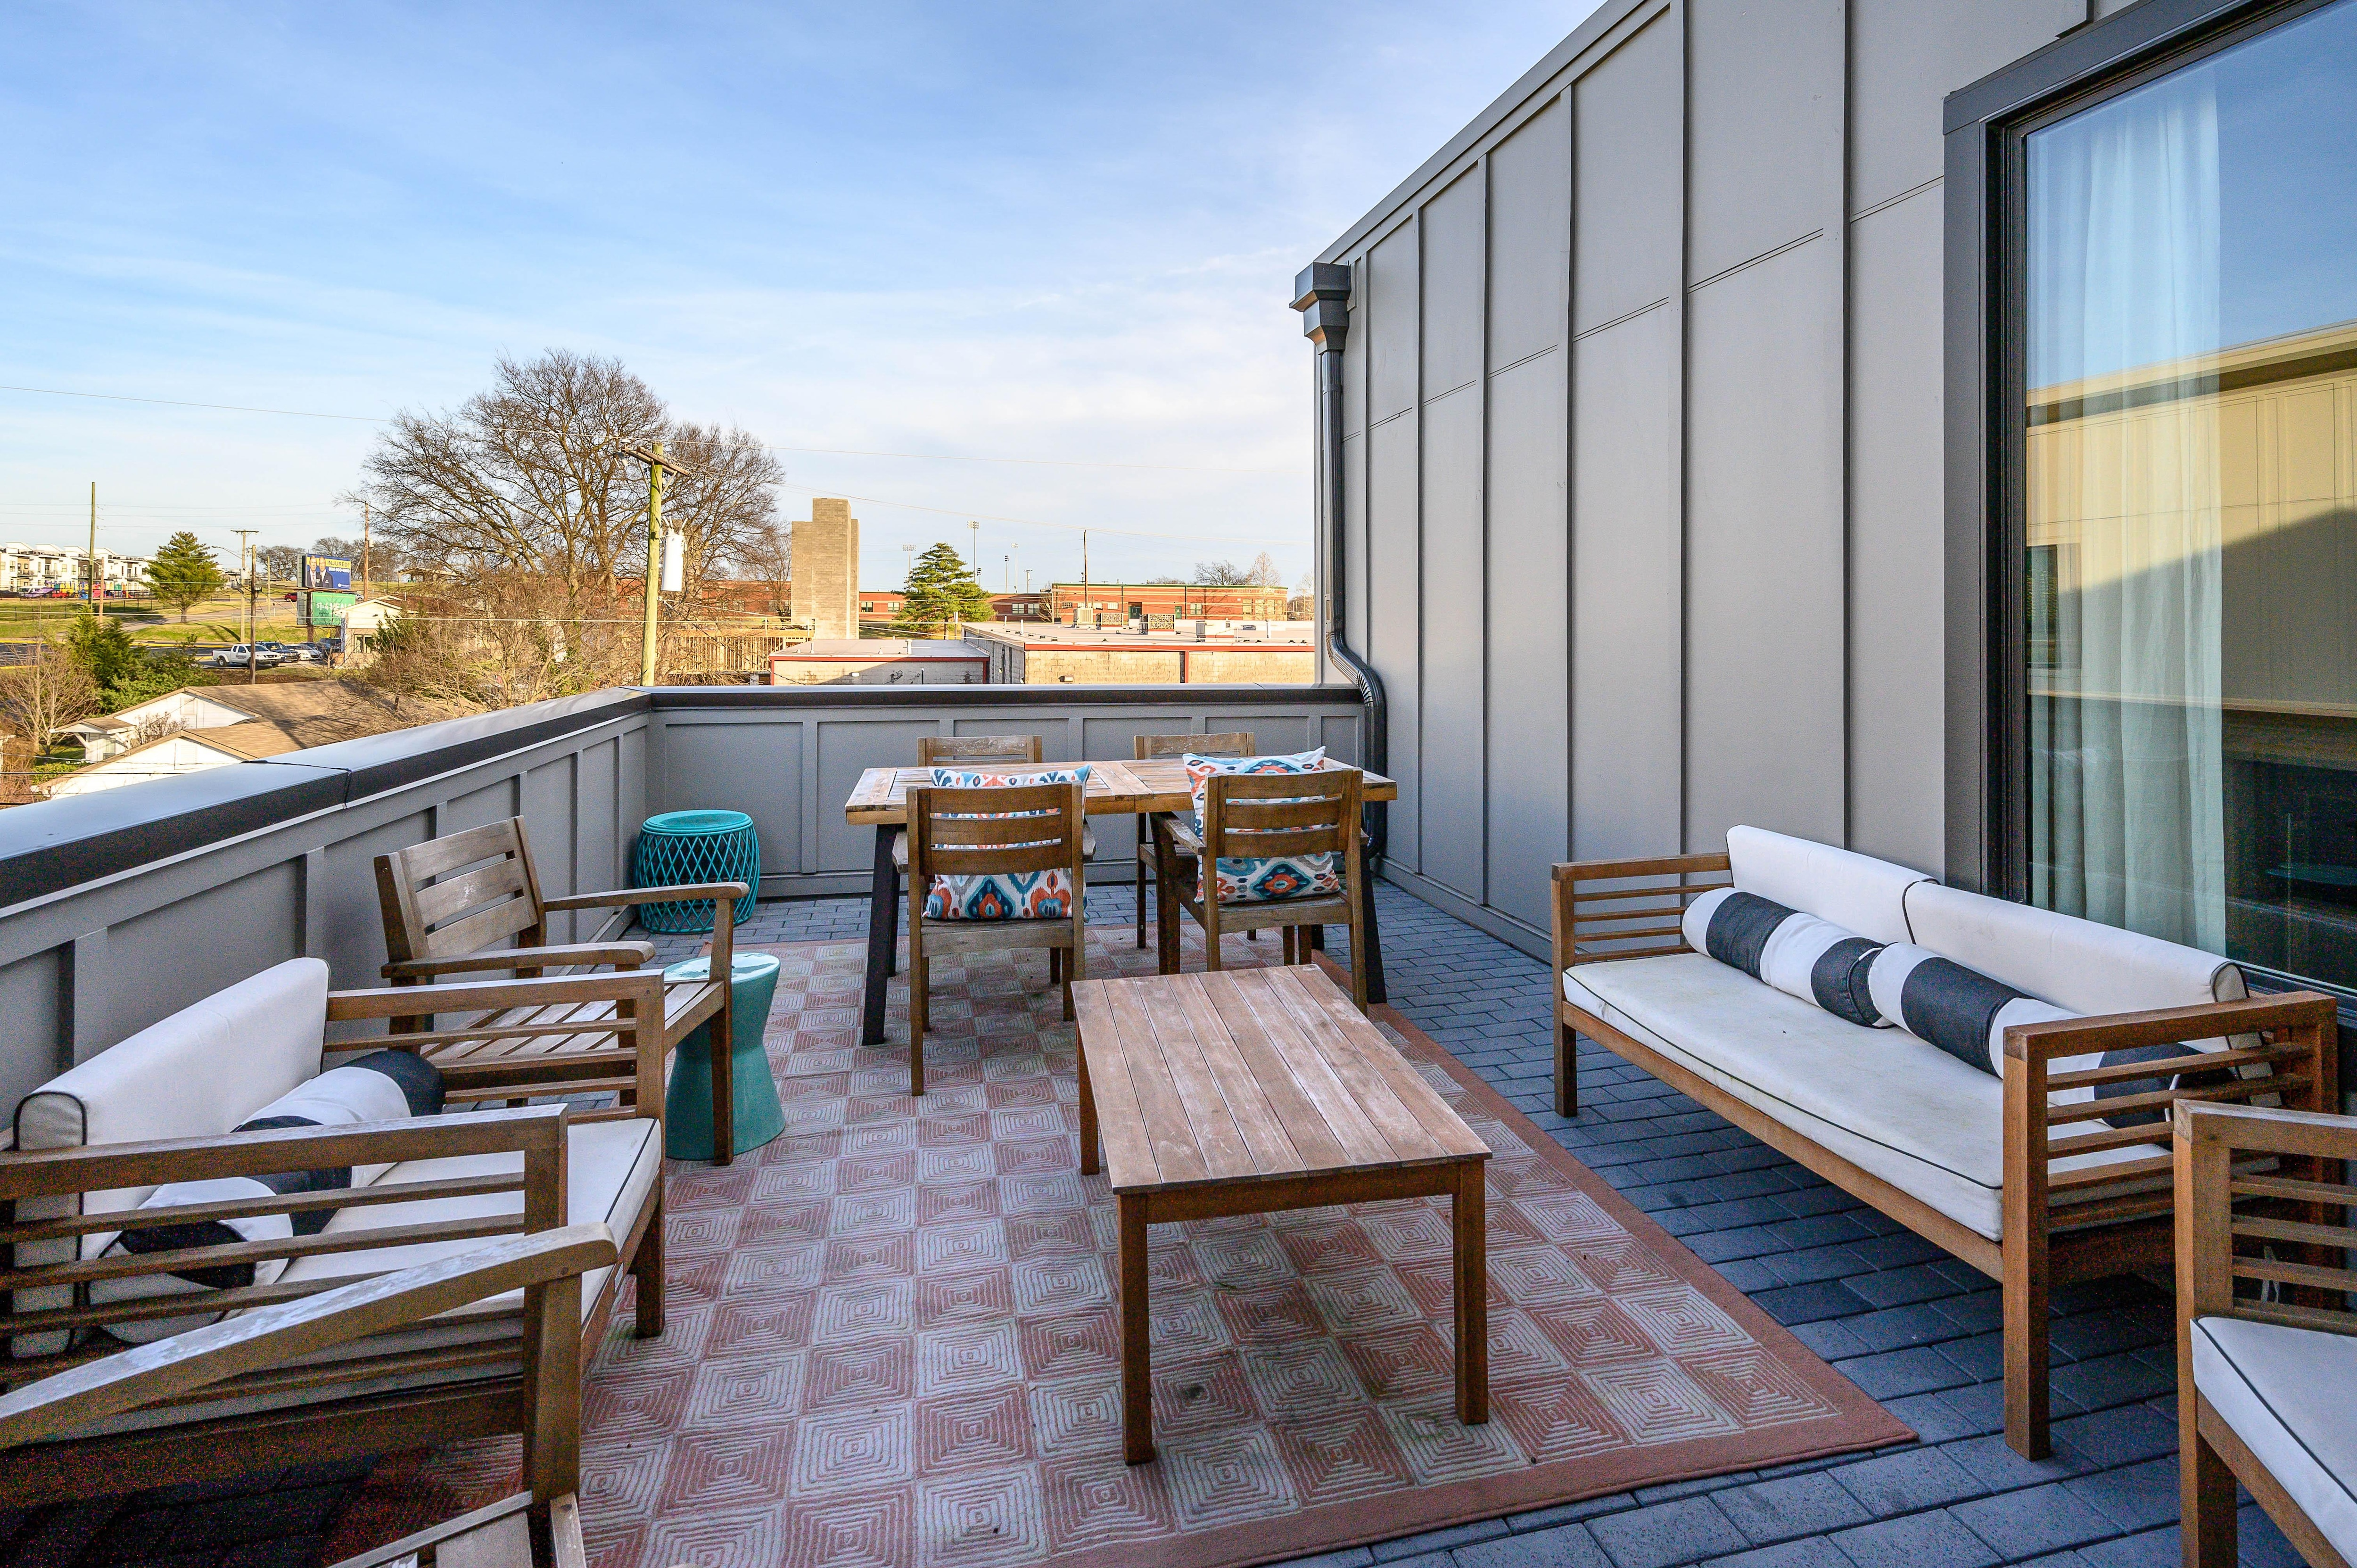 Enjoy a crisp beverage or an alfresco meal on the private rooftop patio.